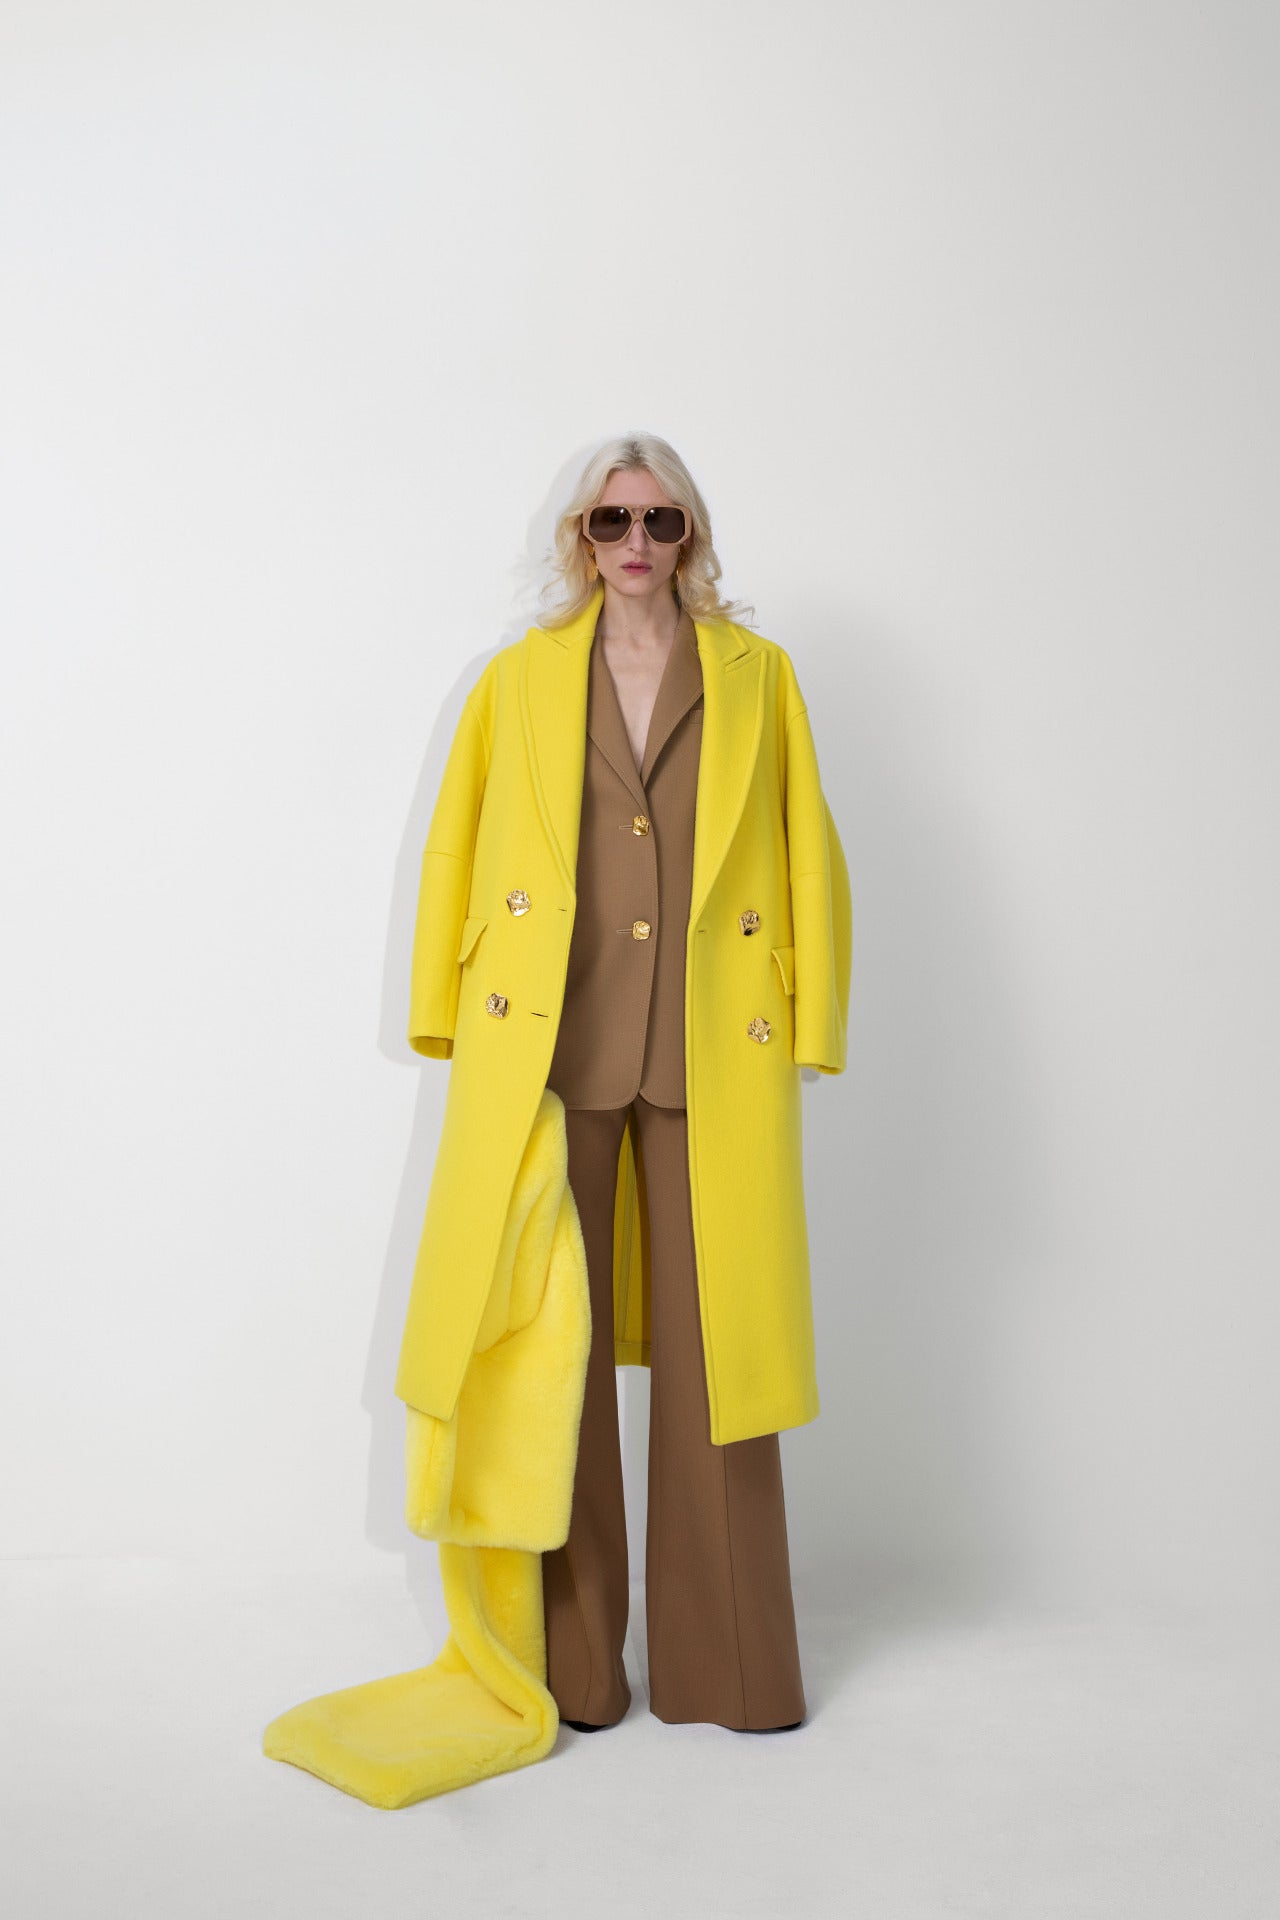 ESCADA Fall/Winter 2020 Yellow statement coat and beige power suit wide legs